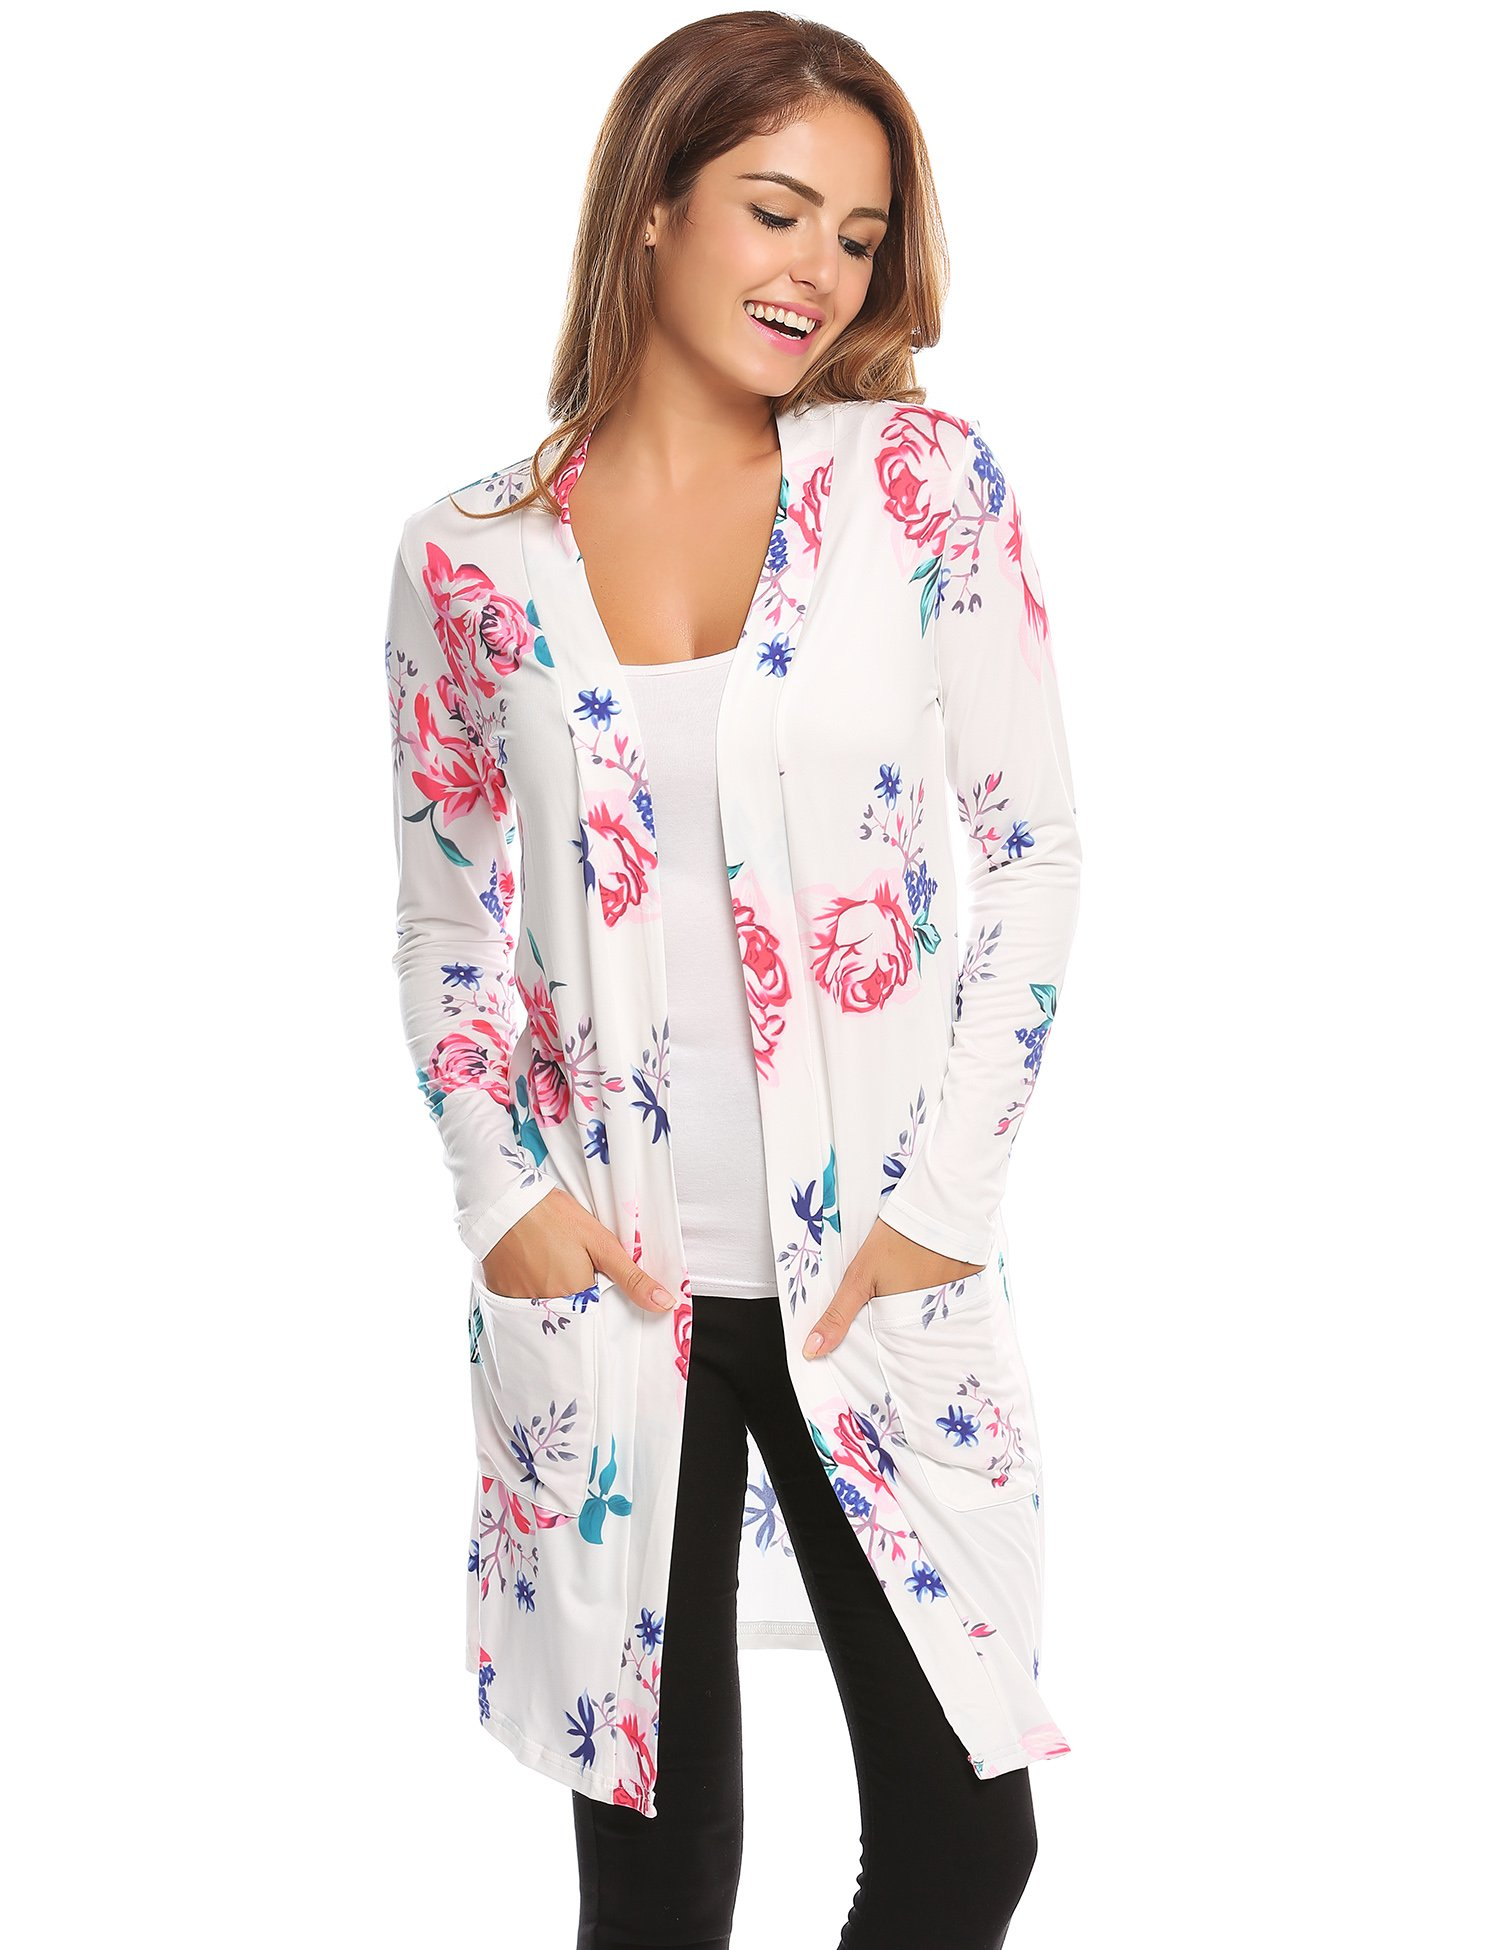 Sherosa Women's Boho Floral Cardigan with Pocket Casual Long Sleeve Wrap Kimono Cardigan Coat Outwear